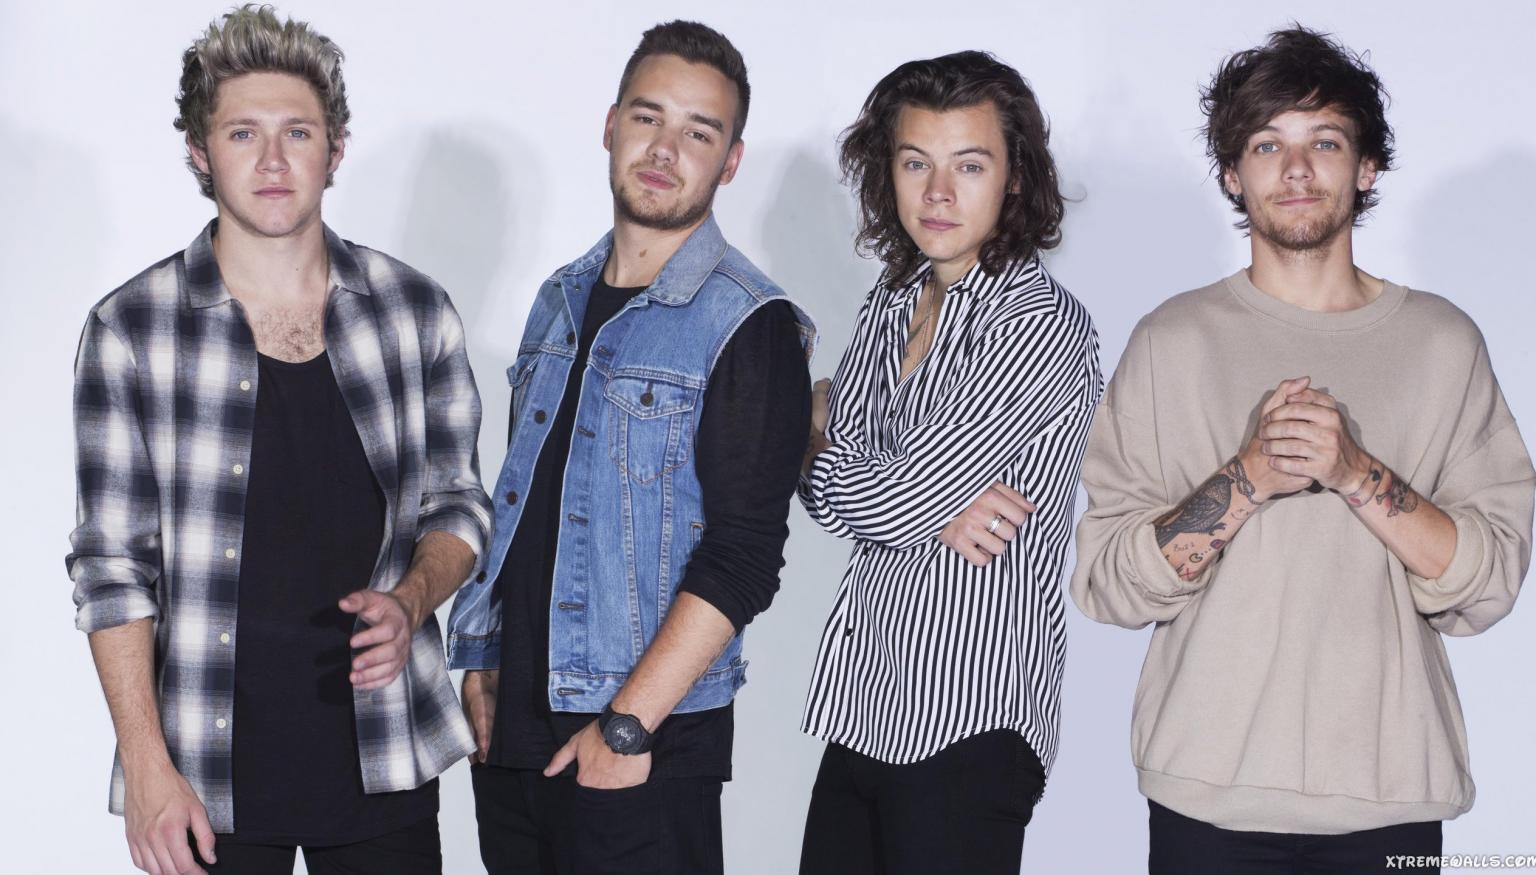 Who are the band members of one direction dating